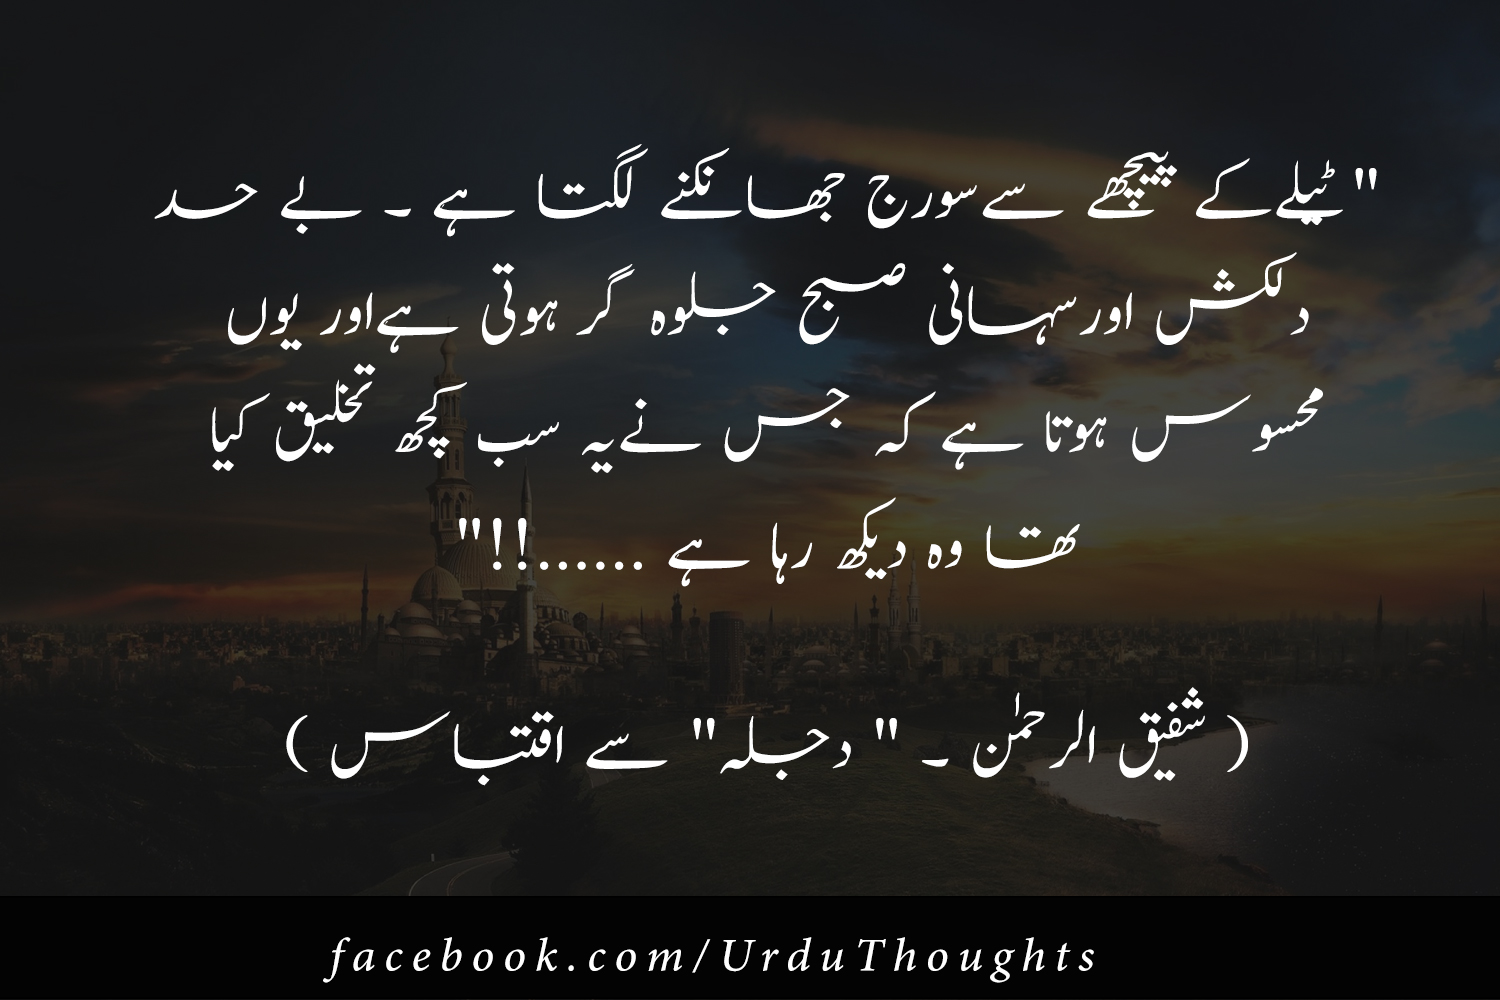 Famous Urdu Quotes With Hq Images Photos Pic Urdu Thoughts